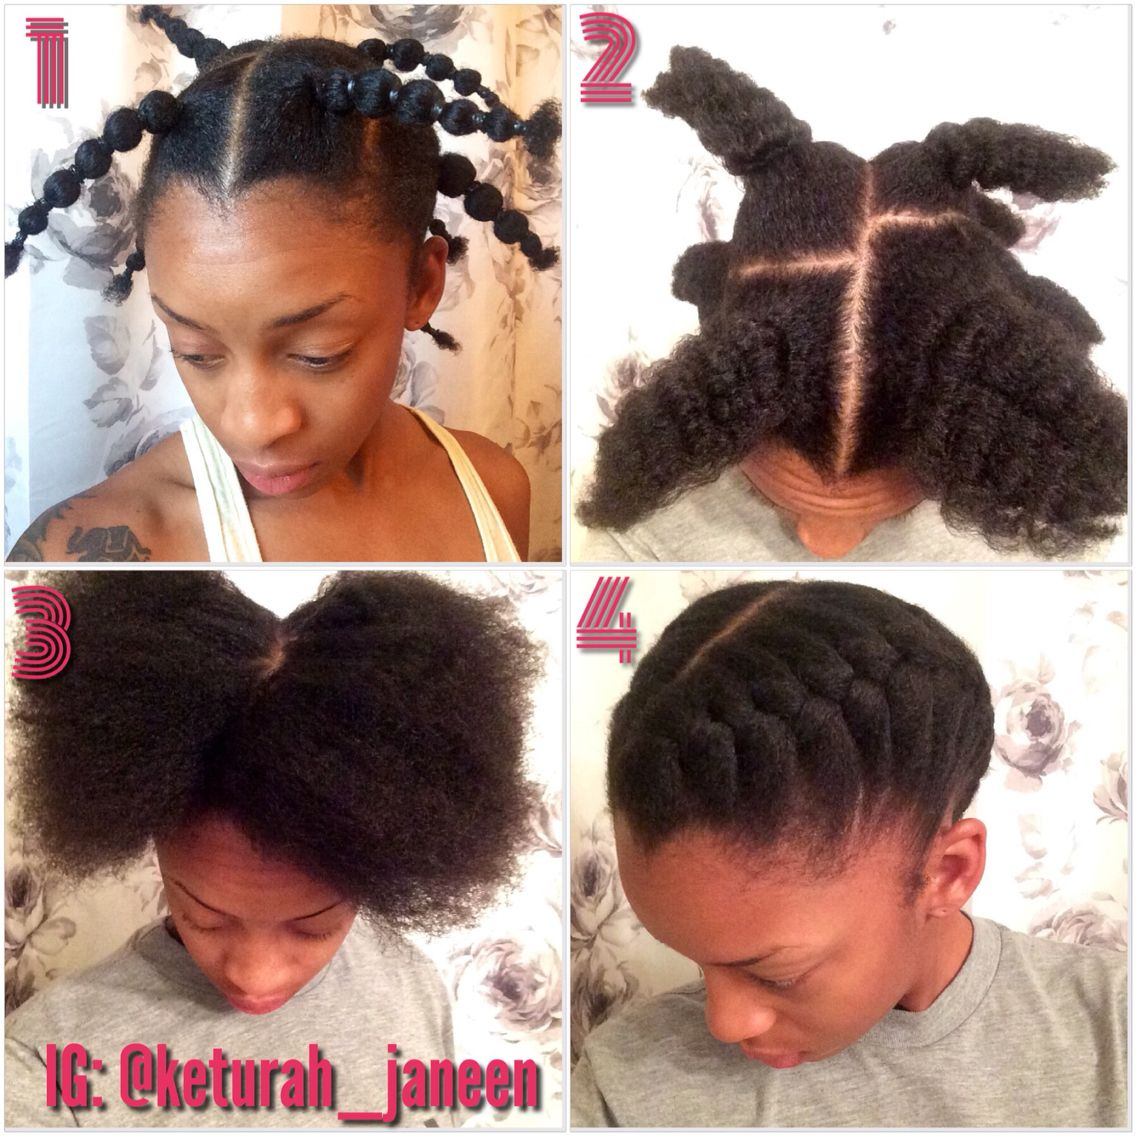 Rubber Band Method Used To Stretch My Hair Without Using Heat Meant For High Shrinkage 4c Naturals Natural Hair Styles Hair Styles Hair Without Heat